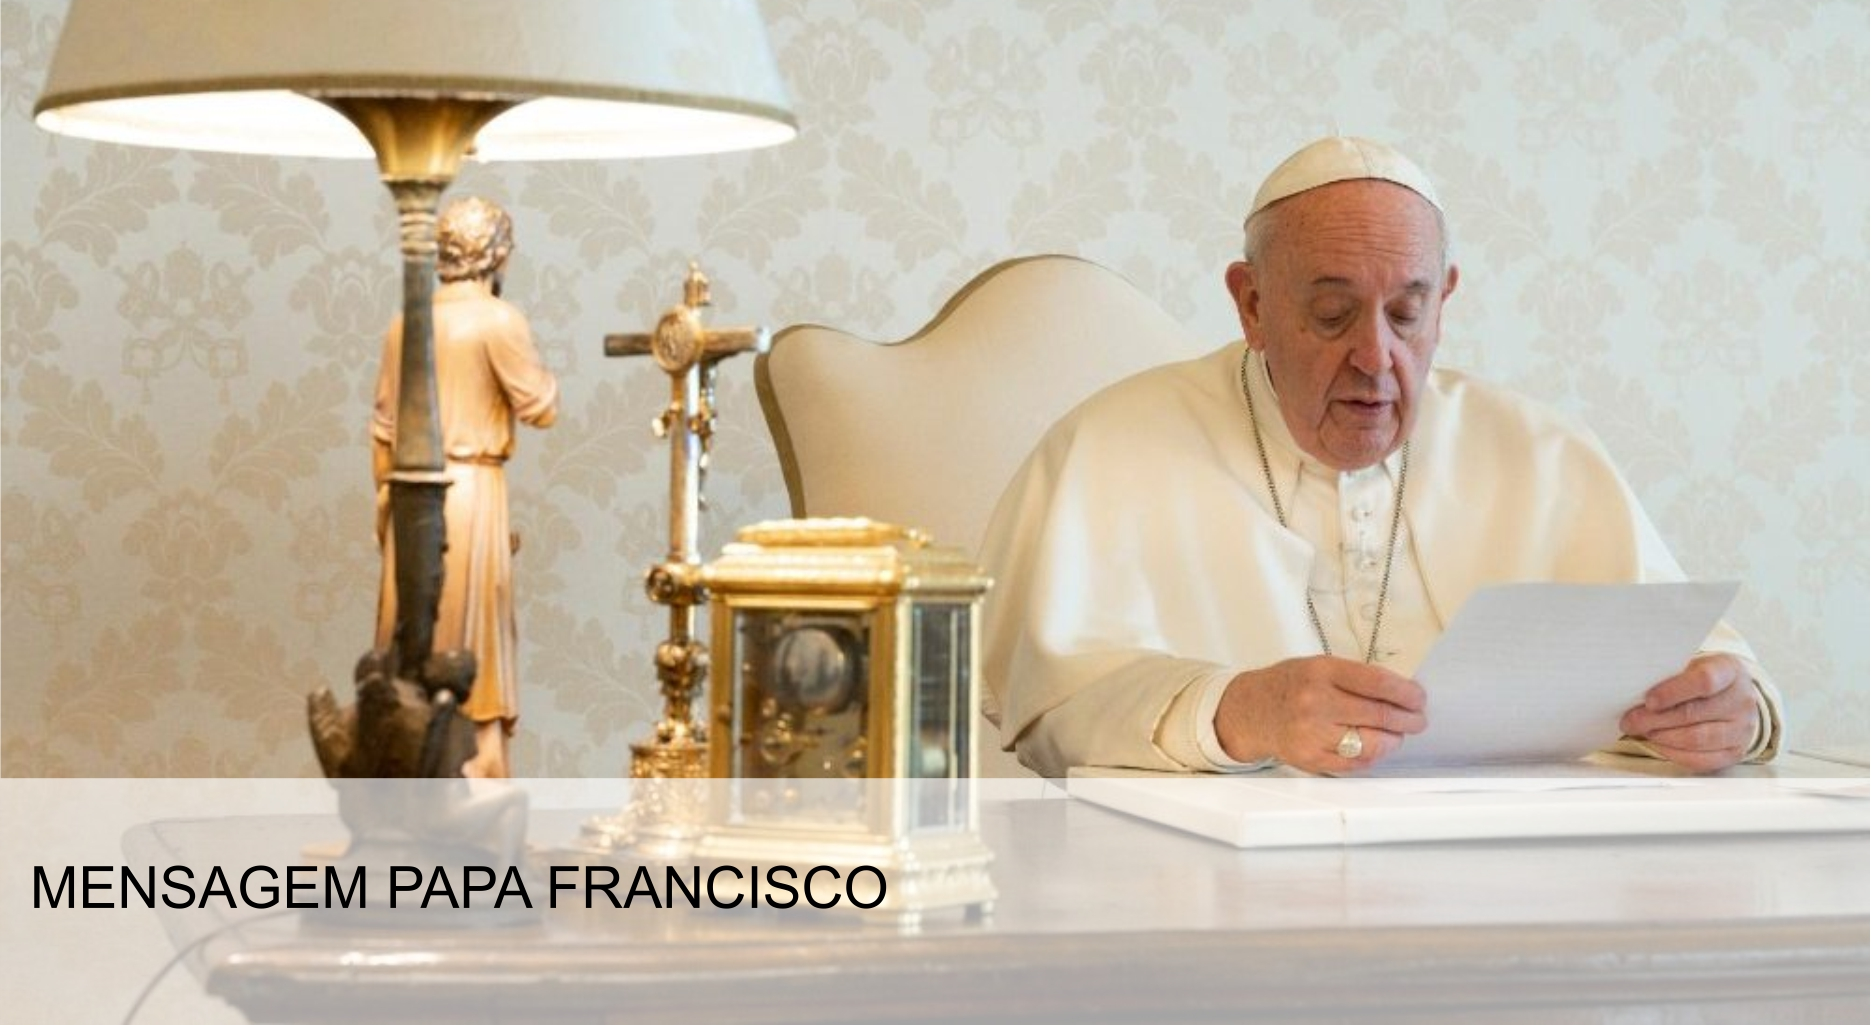 Image from vaticanonews